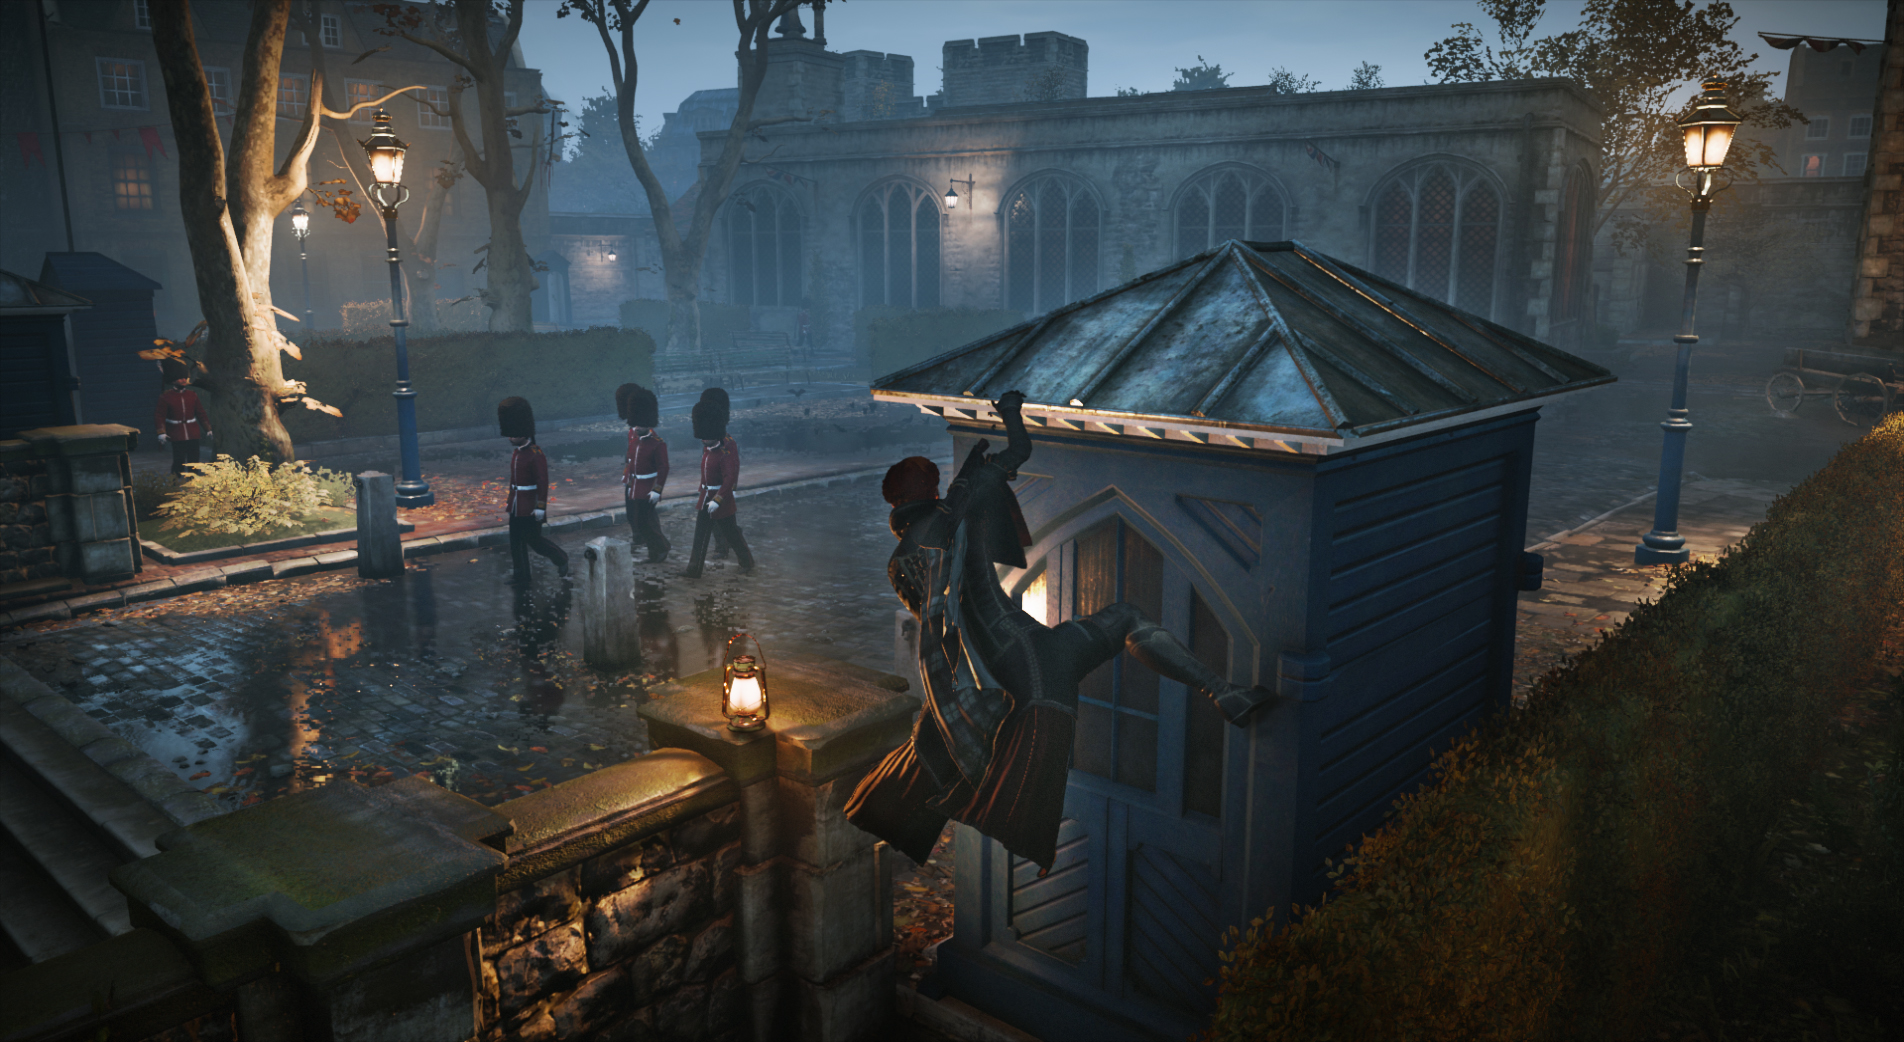 download assassin's creed syndicate gold edition repack by corepack kbagi google drive one ftp link torrent crack cracked by 3dm patch latest update